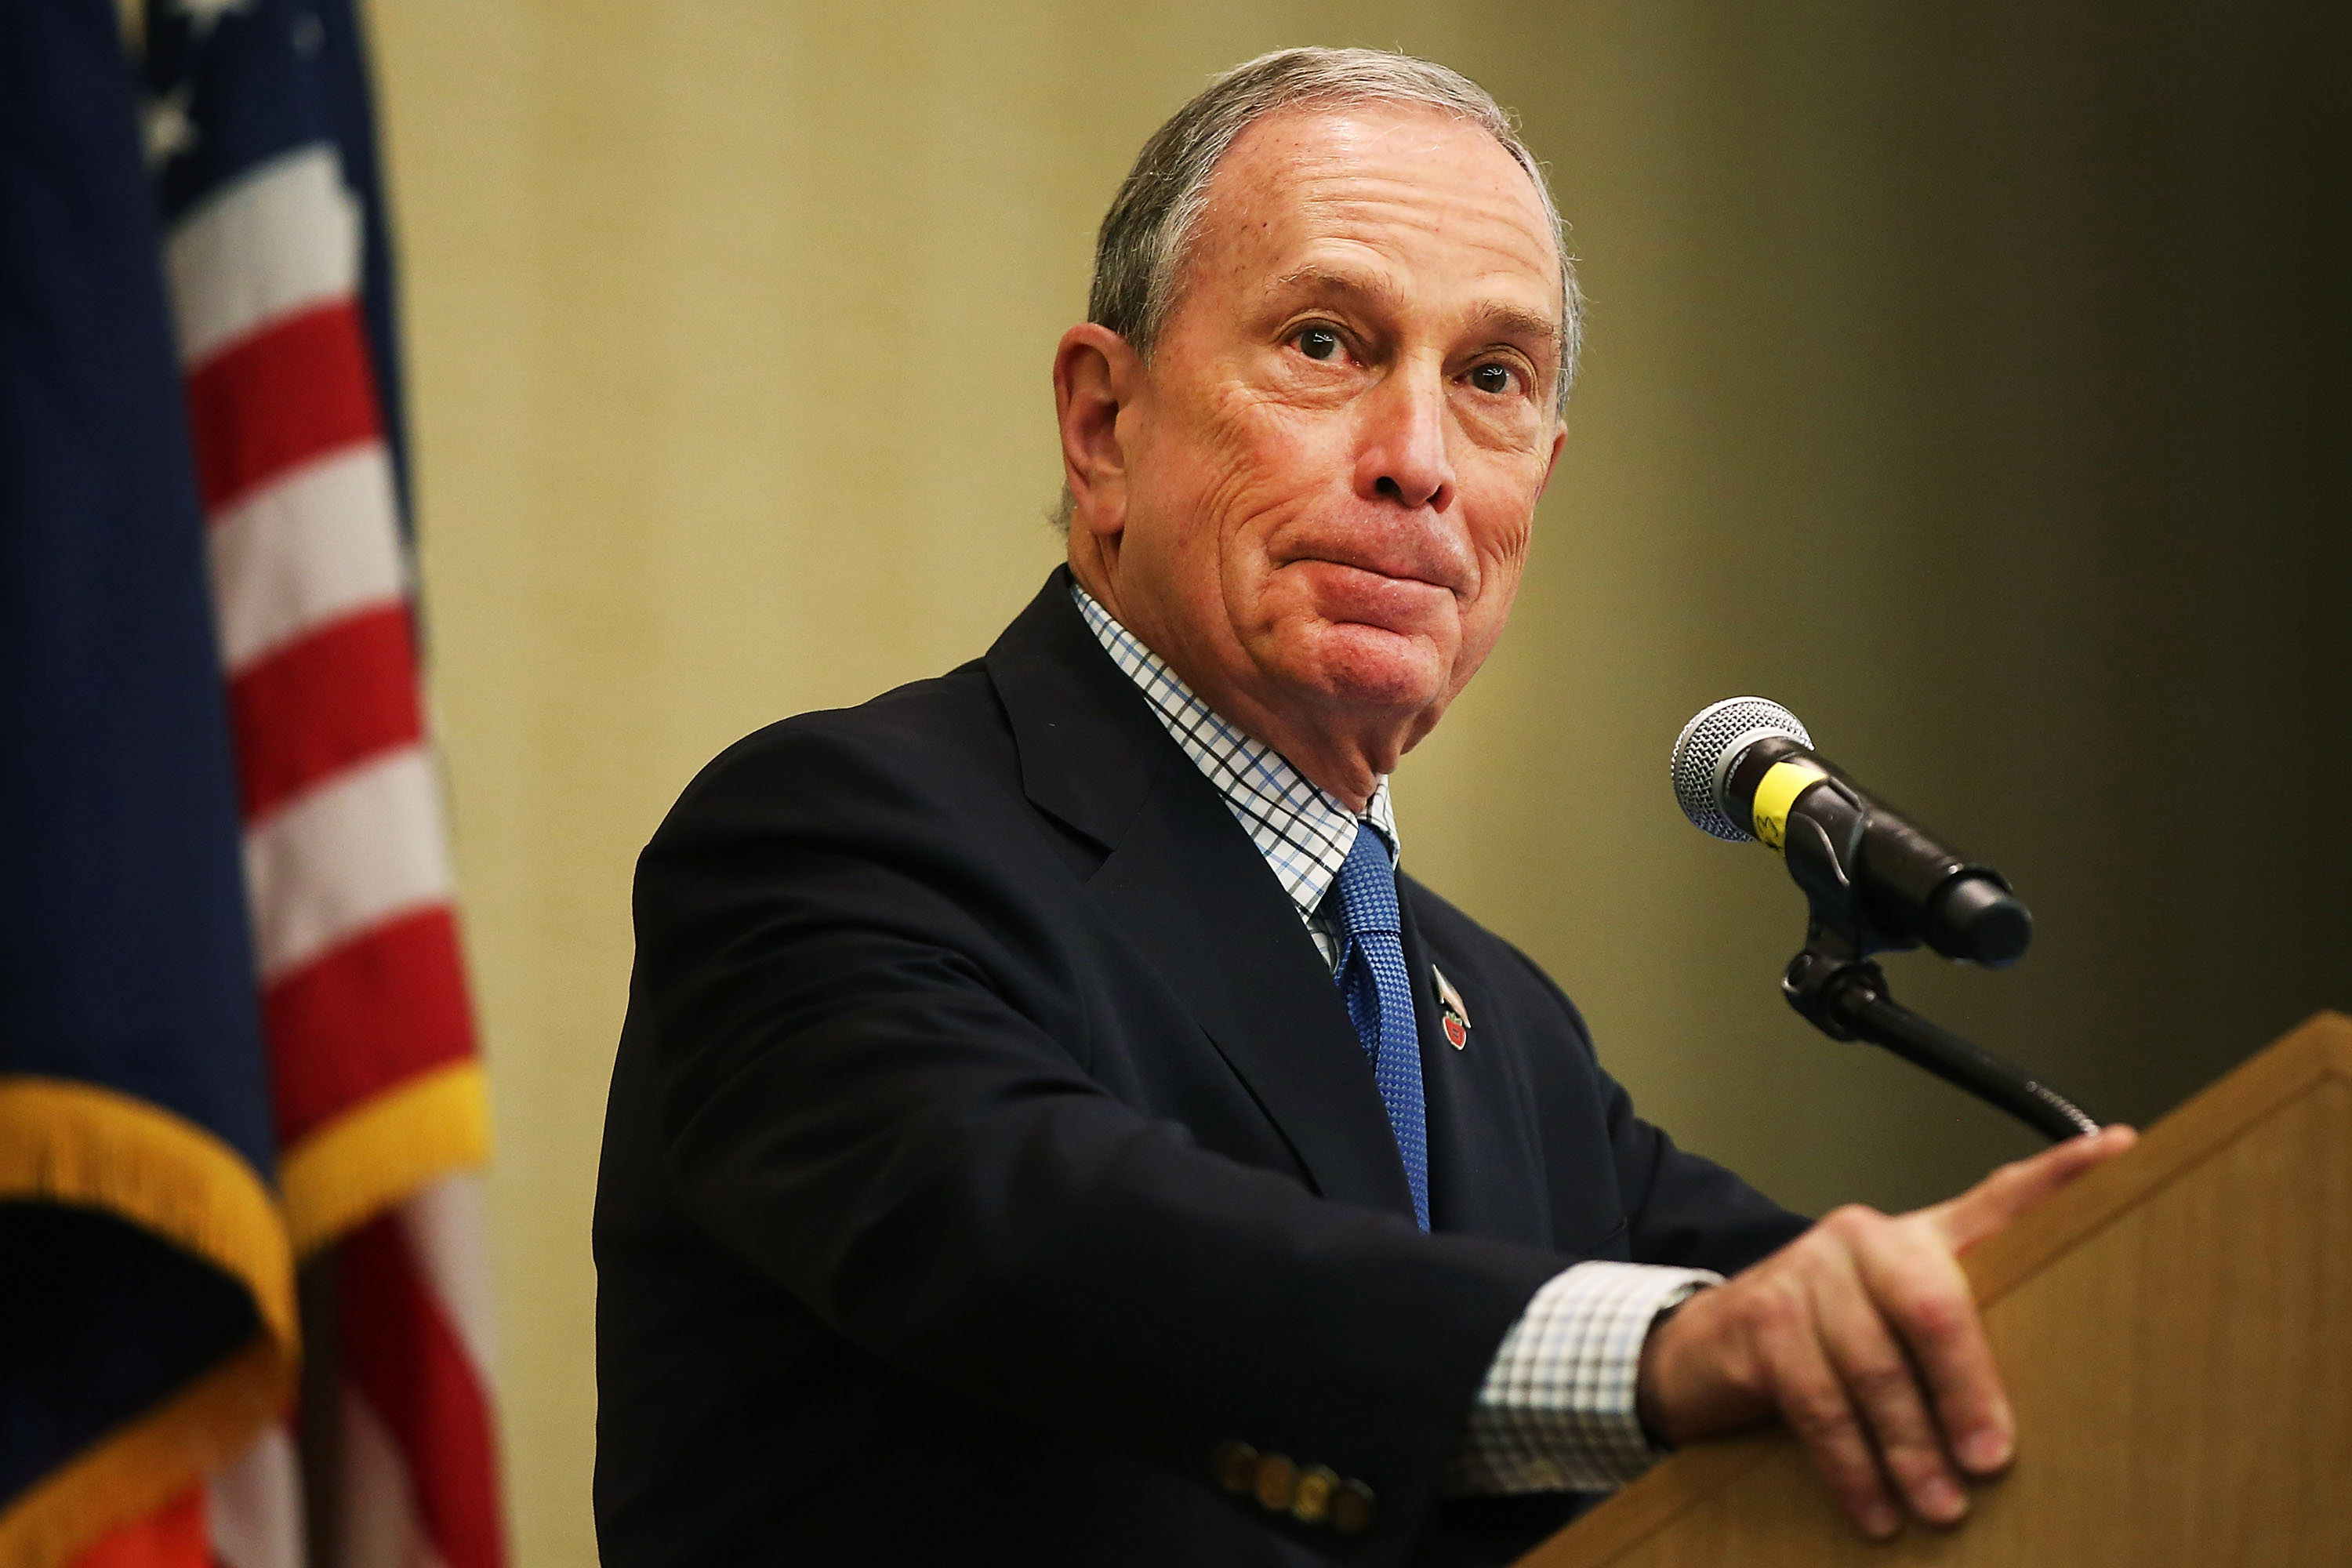 Michael Bloomberg. (Photo: Getty)